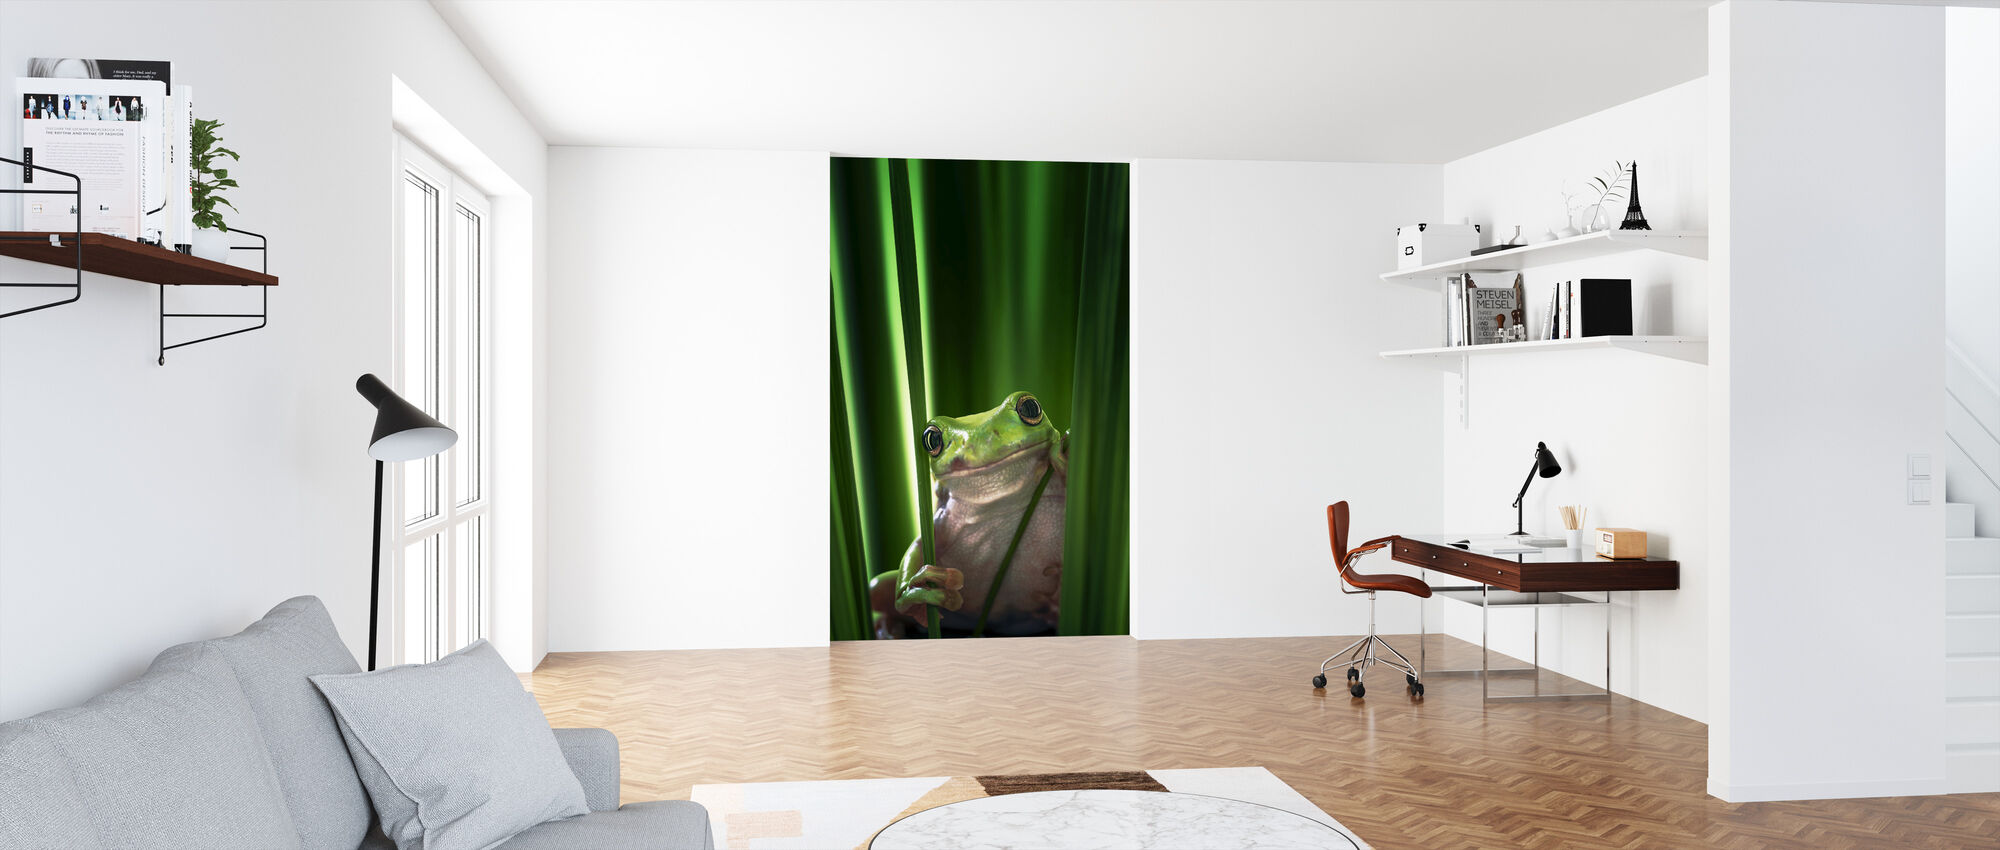 Green Frog - Wallpaper - Office